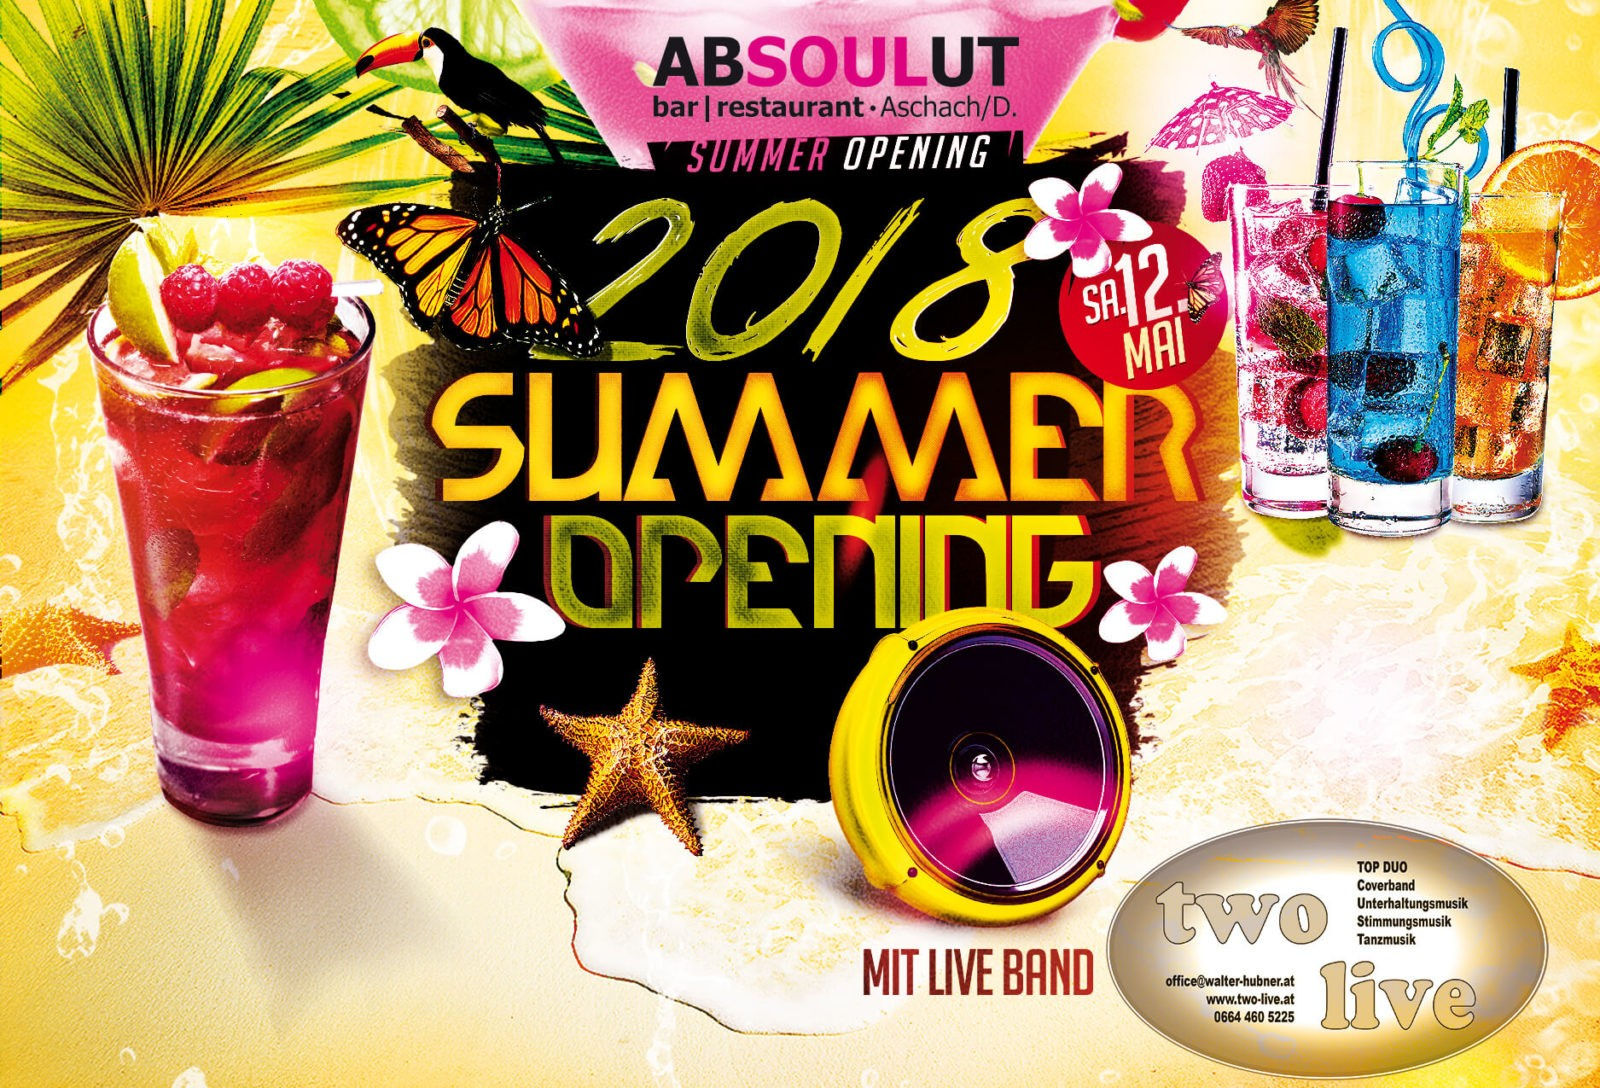 Absolut Bar Restaurant Events - Summer Opening